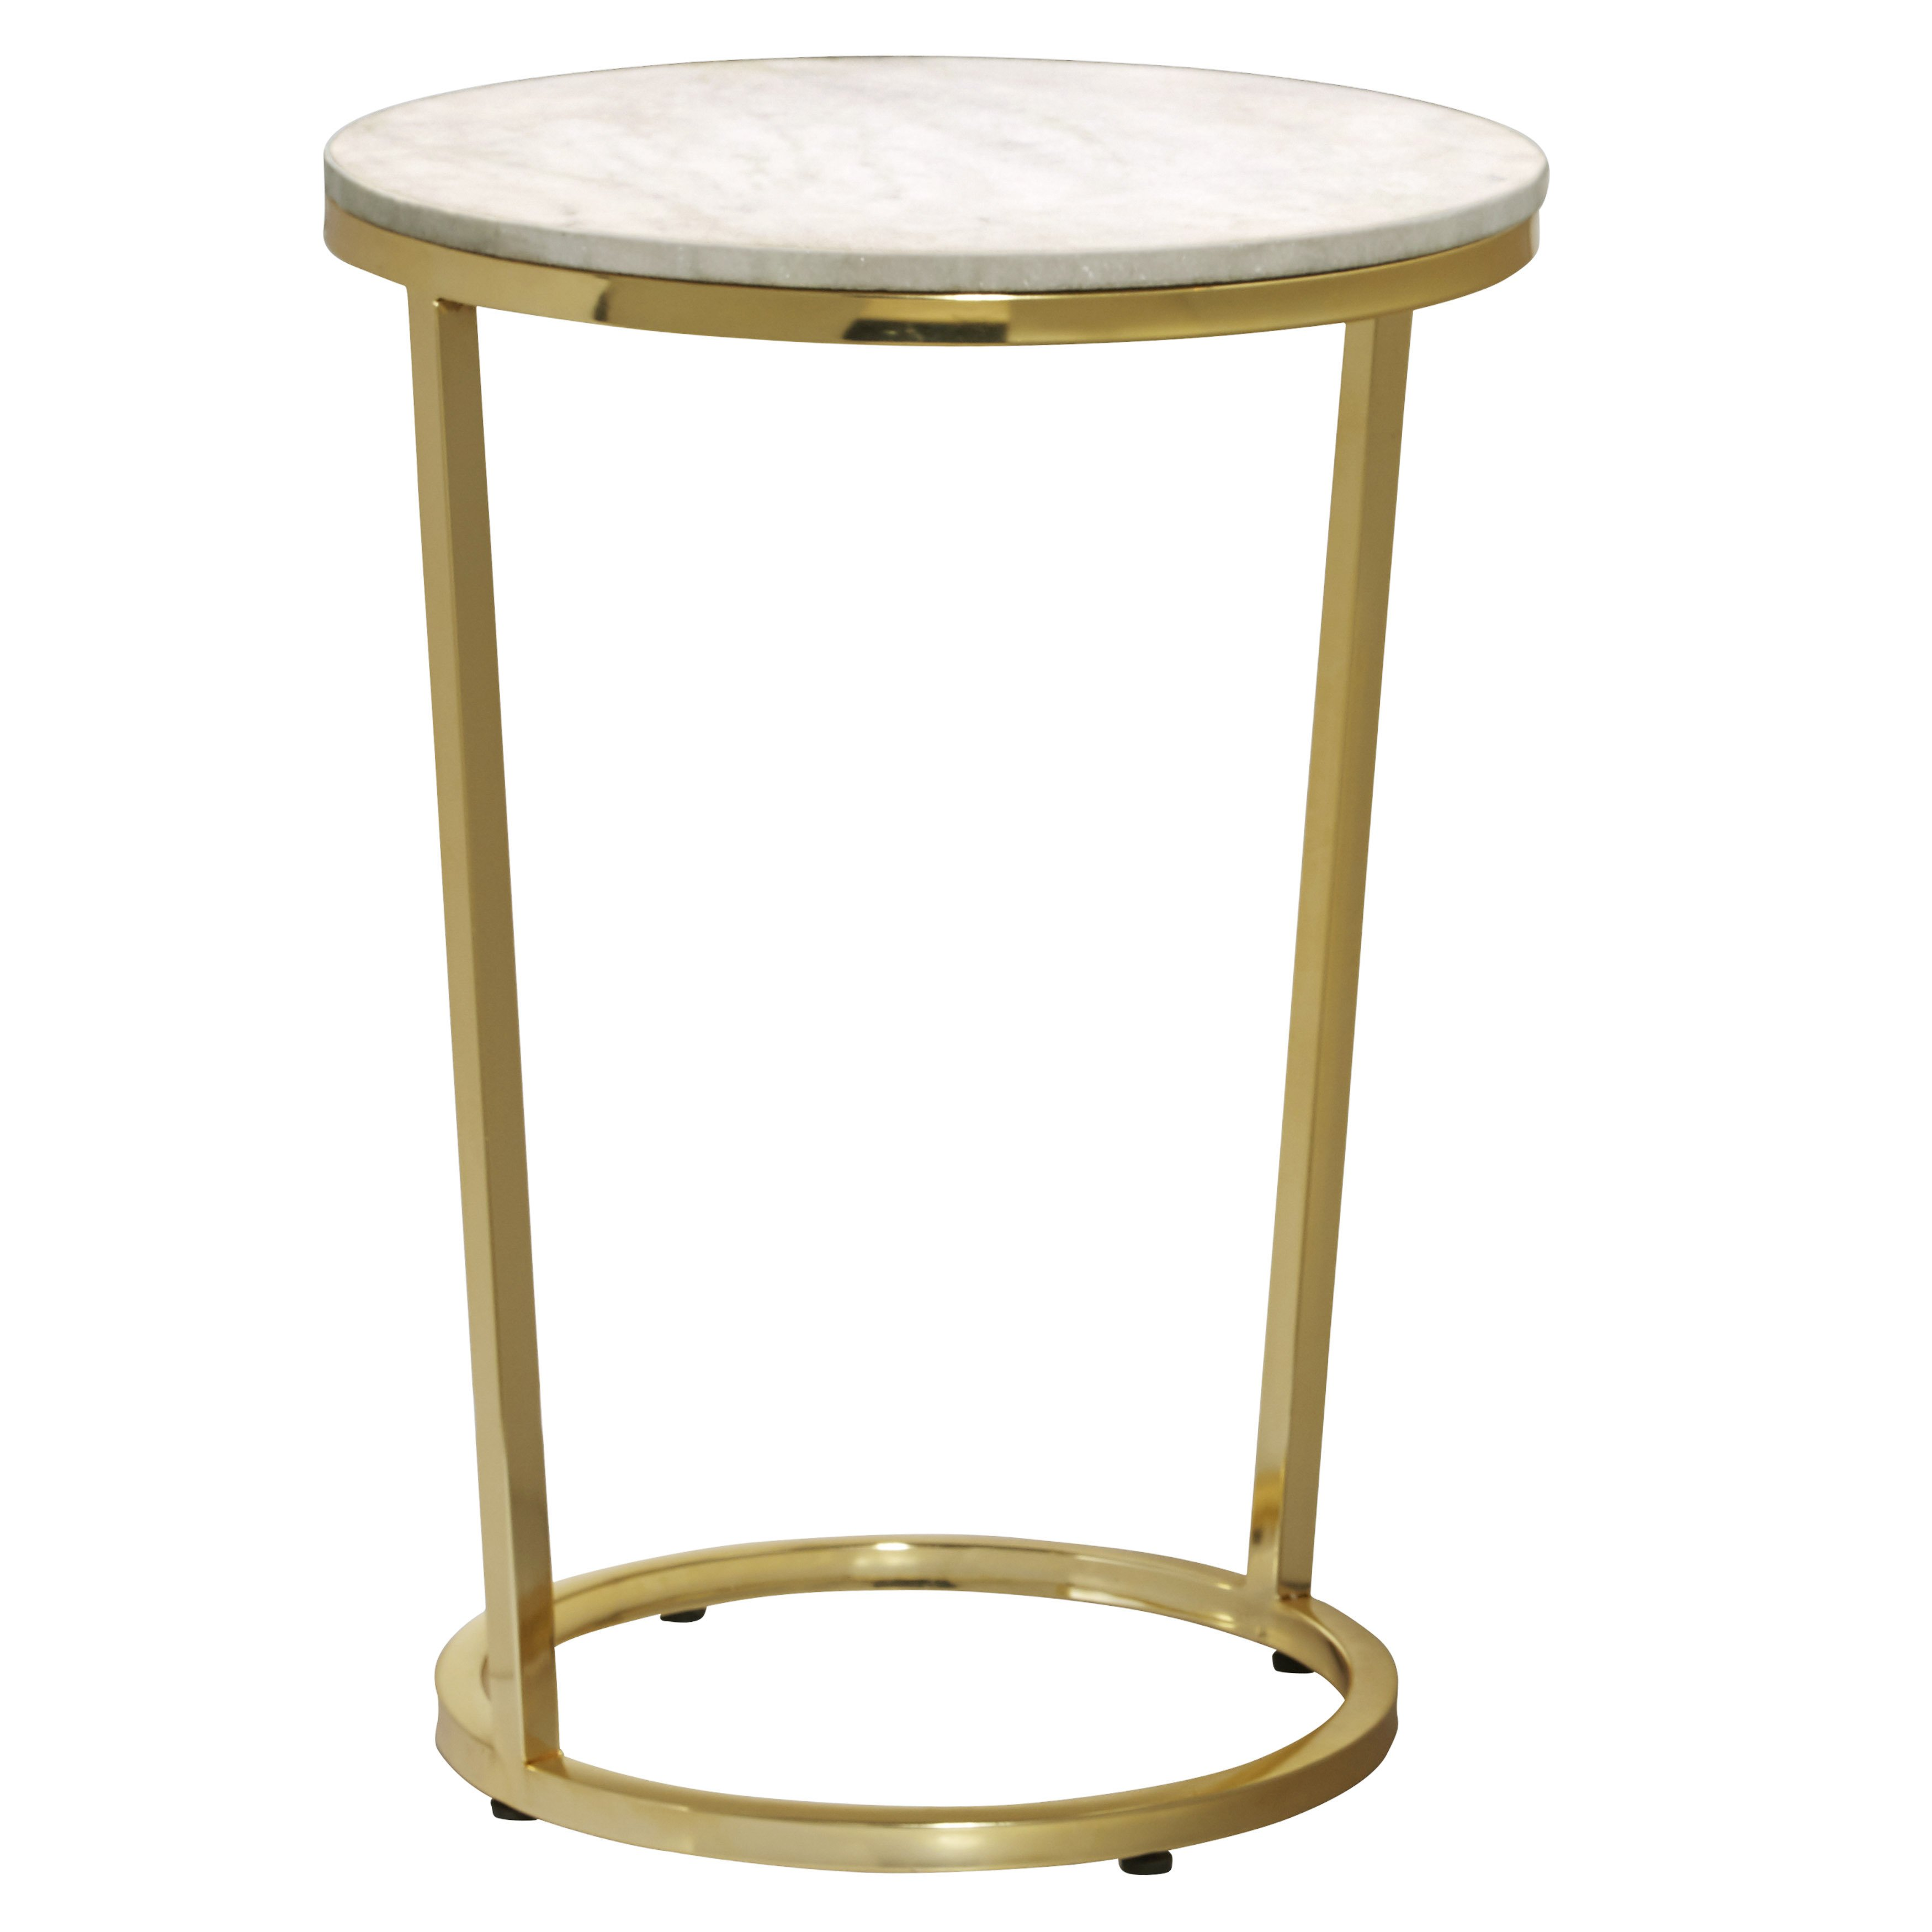 emory white and gold marble round accent table free shipping top today garden drum metal cube side bunnings outdoor furniture chairs foyer pieces aluminum patio bell acrylic